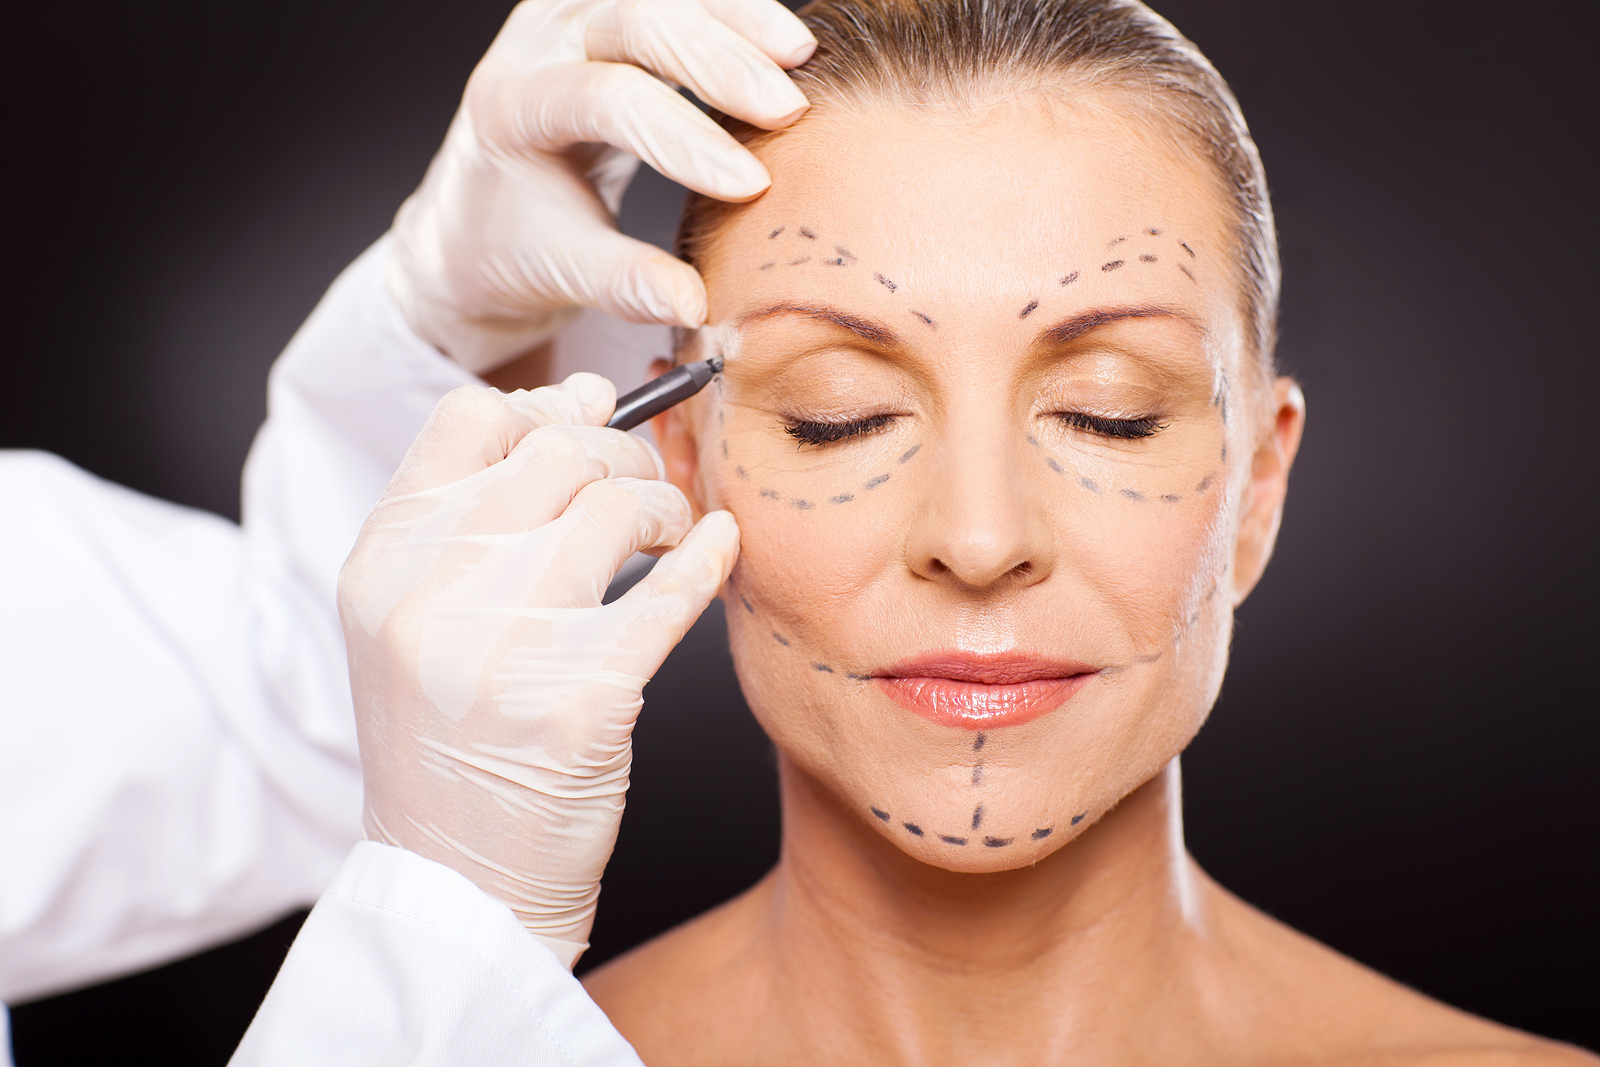 How to get ready, Toronto plastic surgery, cosmetic surgery